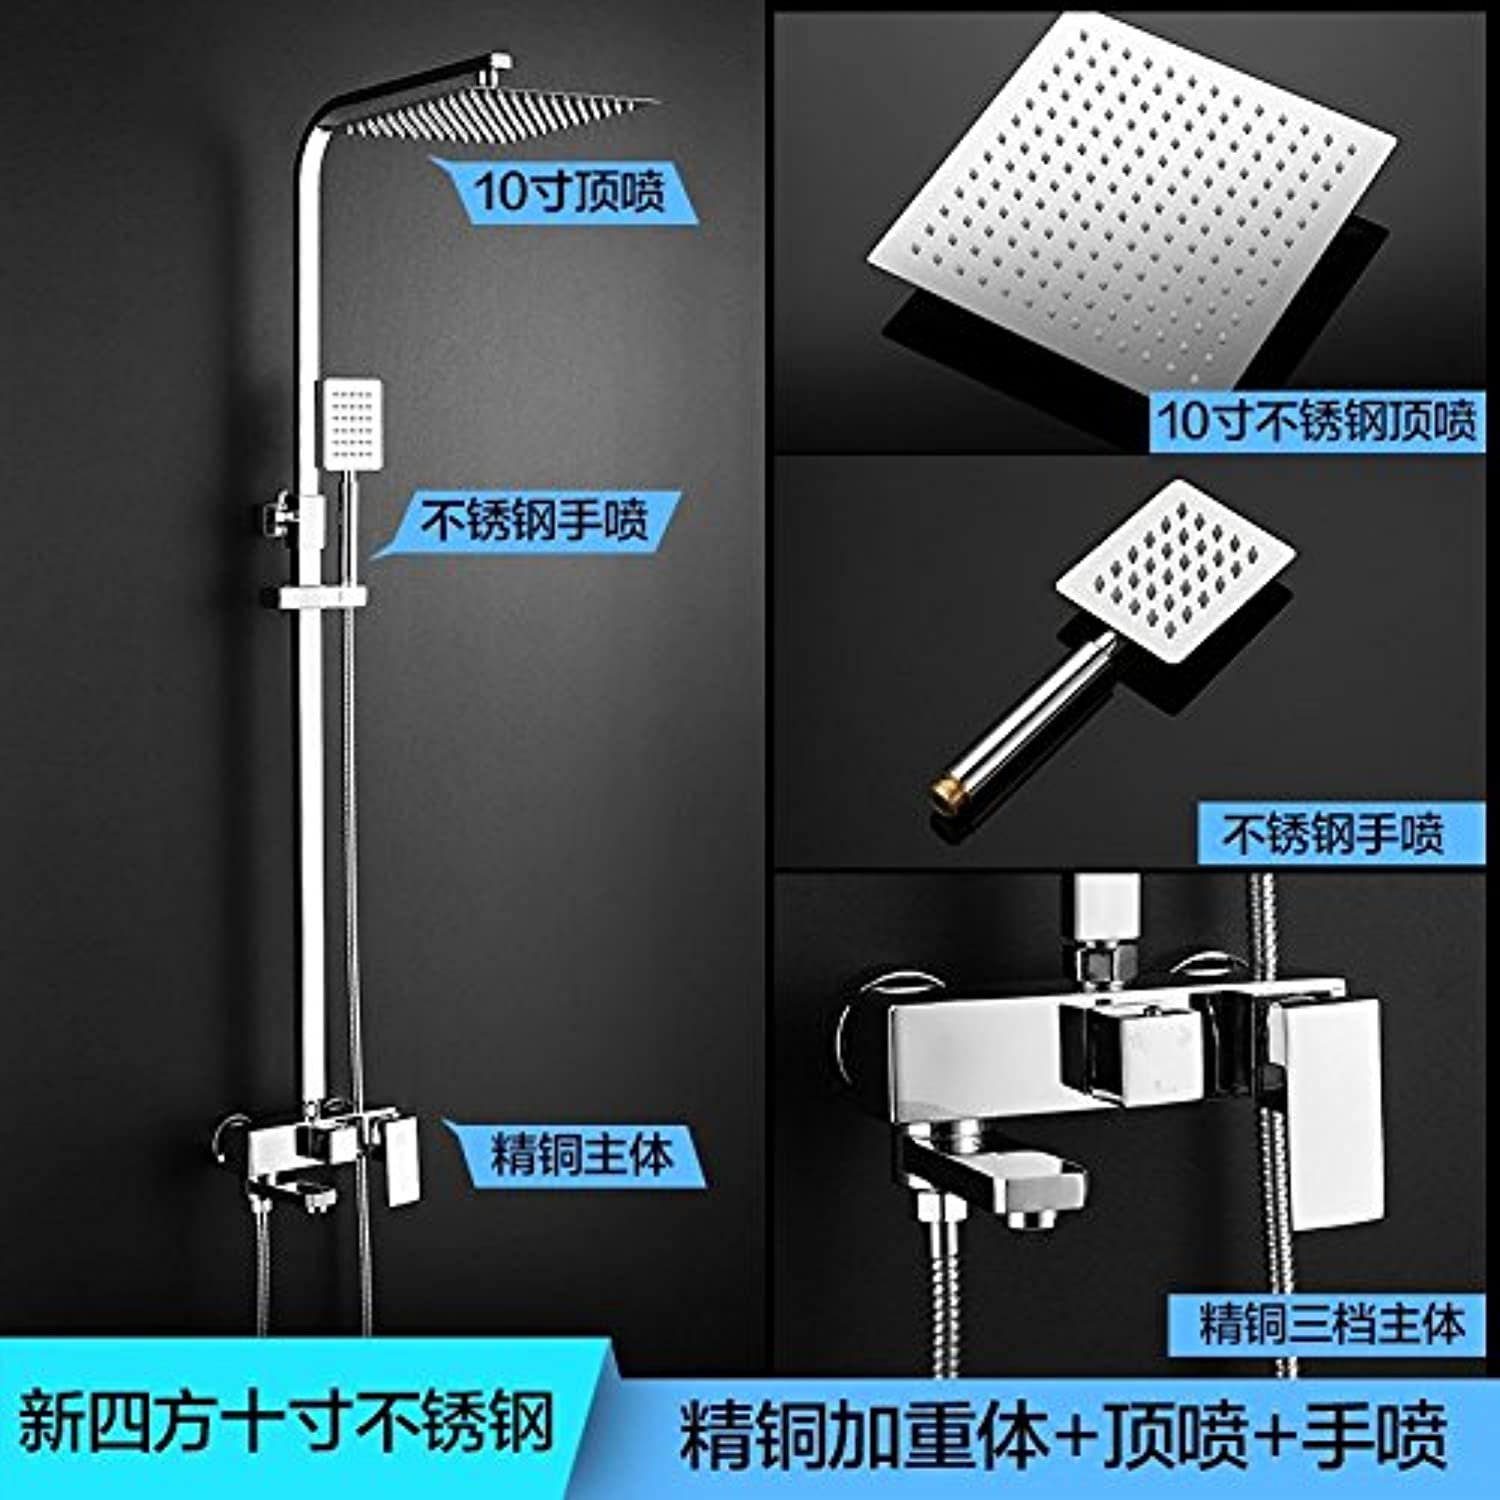 Gyps Faucet Basin Mixer Tap Waterfall Faucet Antique Bathroom Mixer Bar Mixer Shower Set Tap antique bathroom faucet Shower Kit booster sprinklers all brass faucets showers heated rain for home wall s